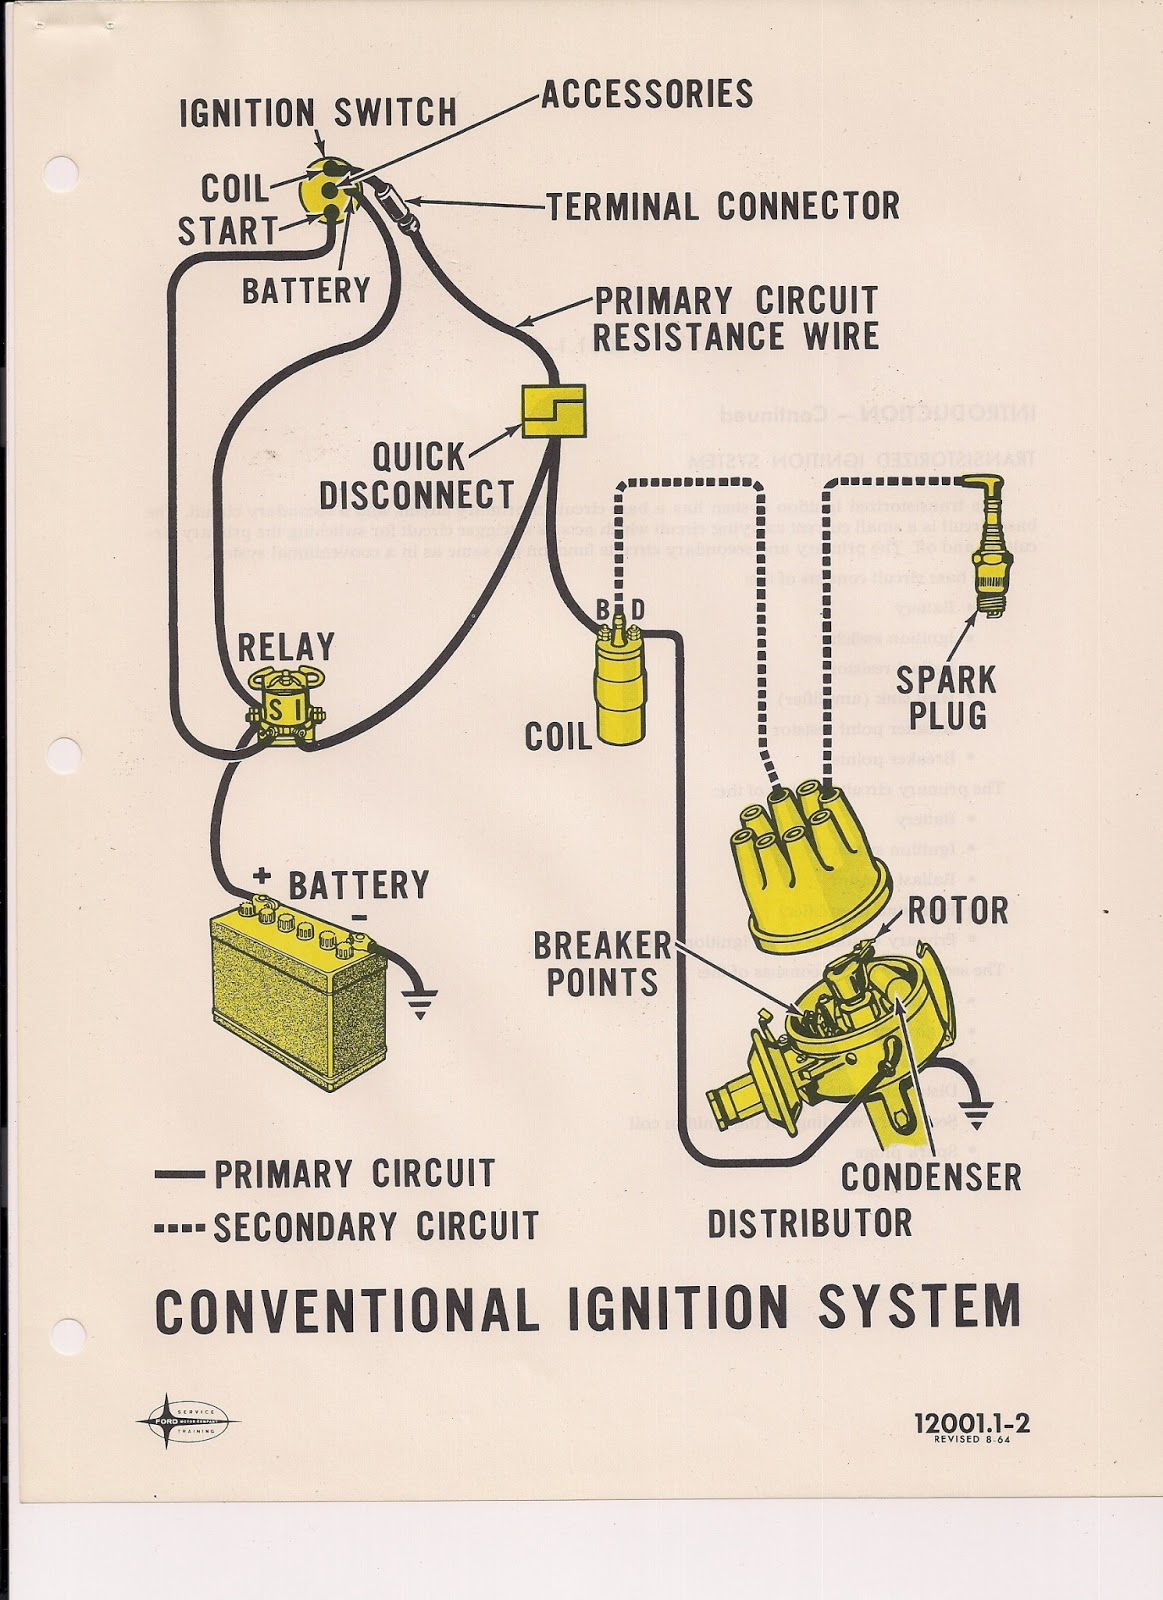 Ignition+1 the care and feeding of ponies mustang ignition system 1965 and 1966 69 roadrunner ignition switch wiring diagram at bakdesigns.co